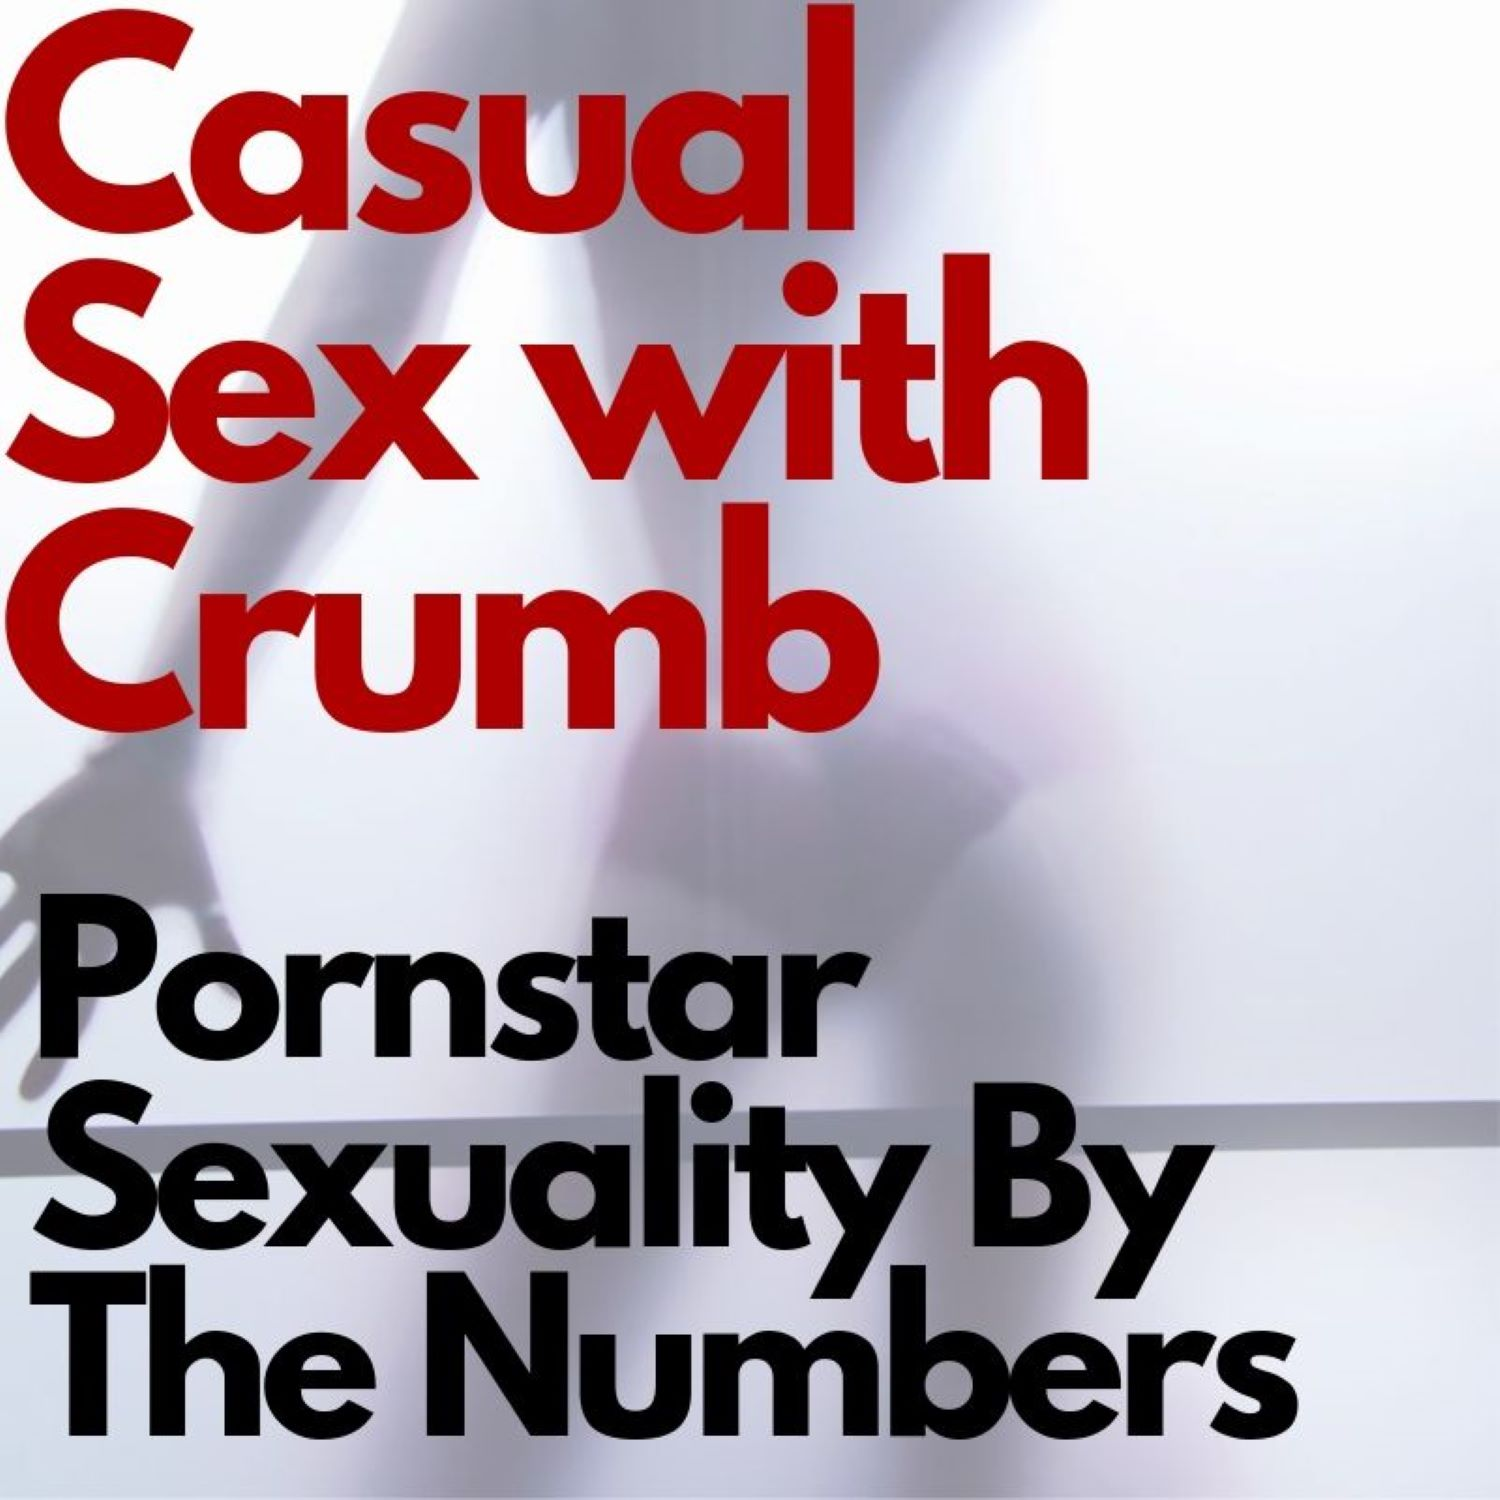 Porn Star Sexuality By The Numbers